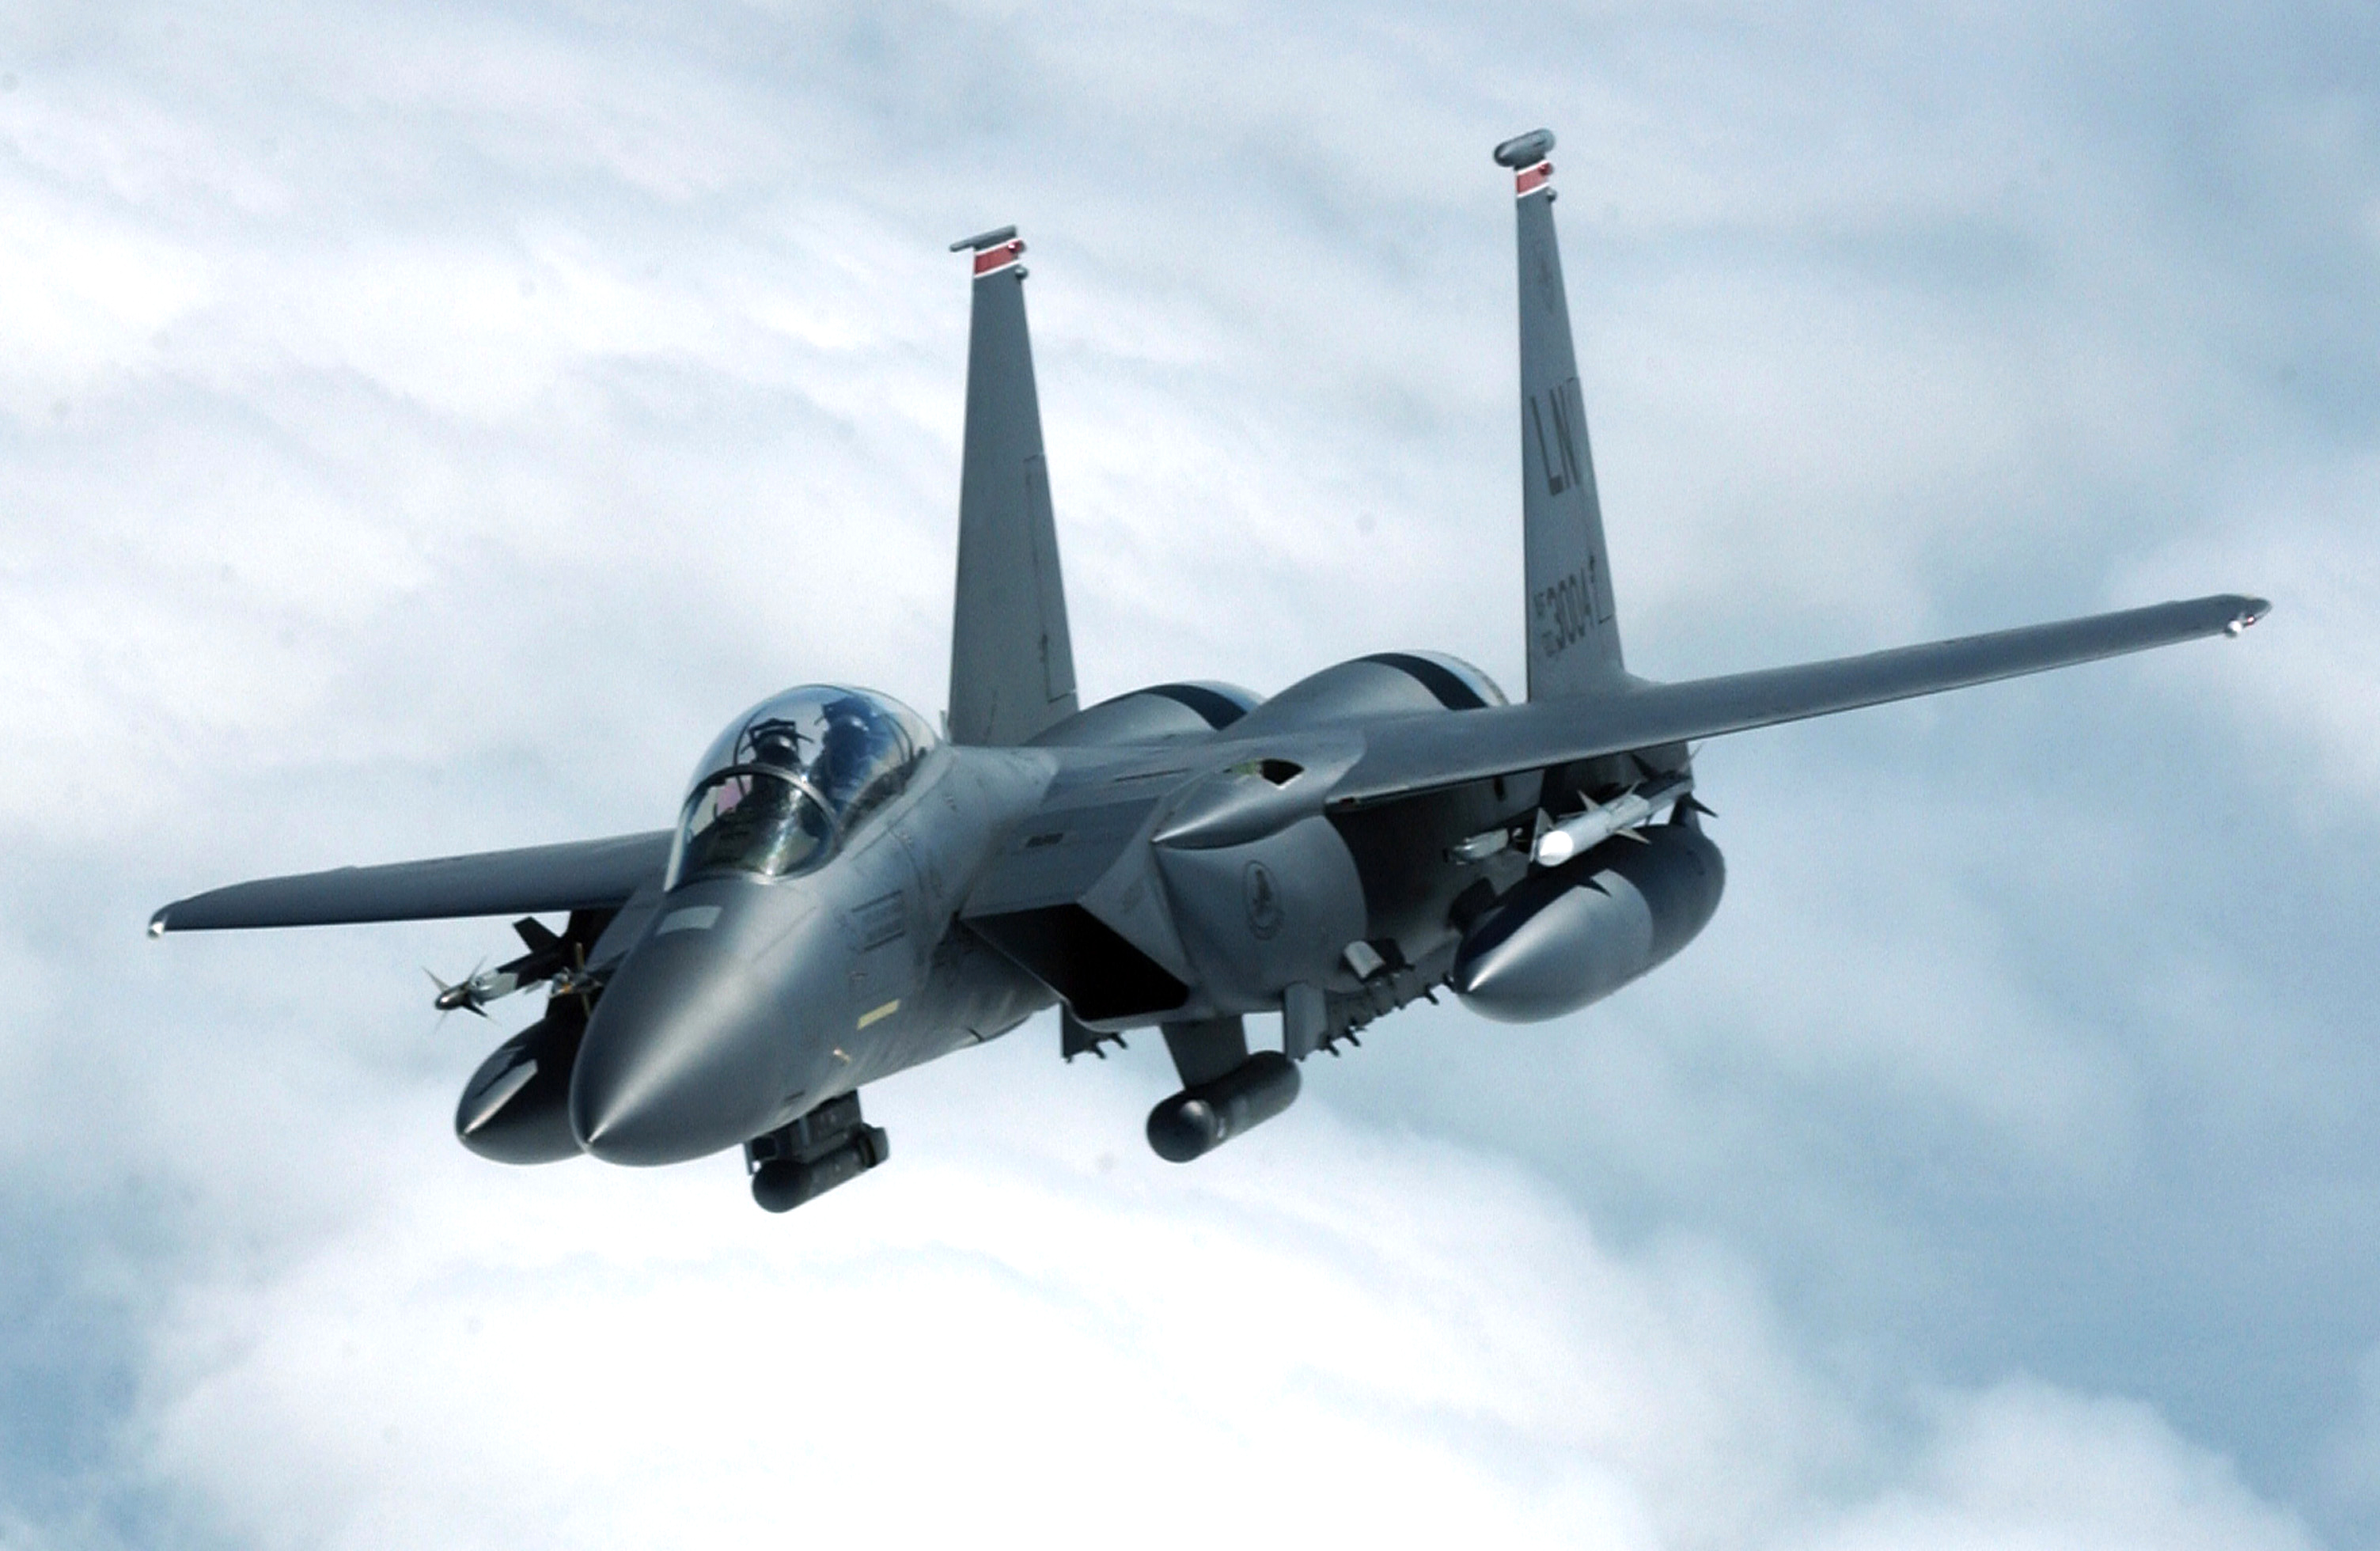 http://upload.wikimedia.org/wikipedia/commons/6/65/F-15E_Strike_Eagle_banks_away_from_a_tanker.jpg